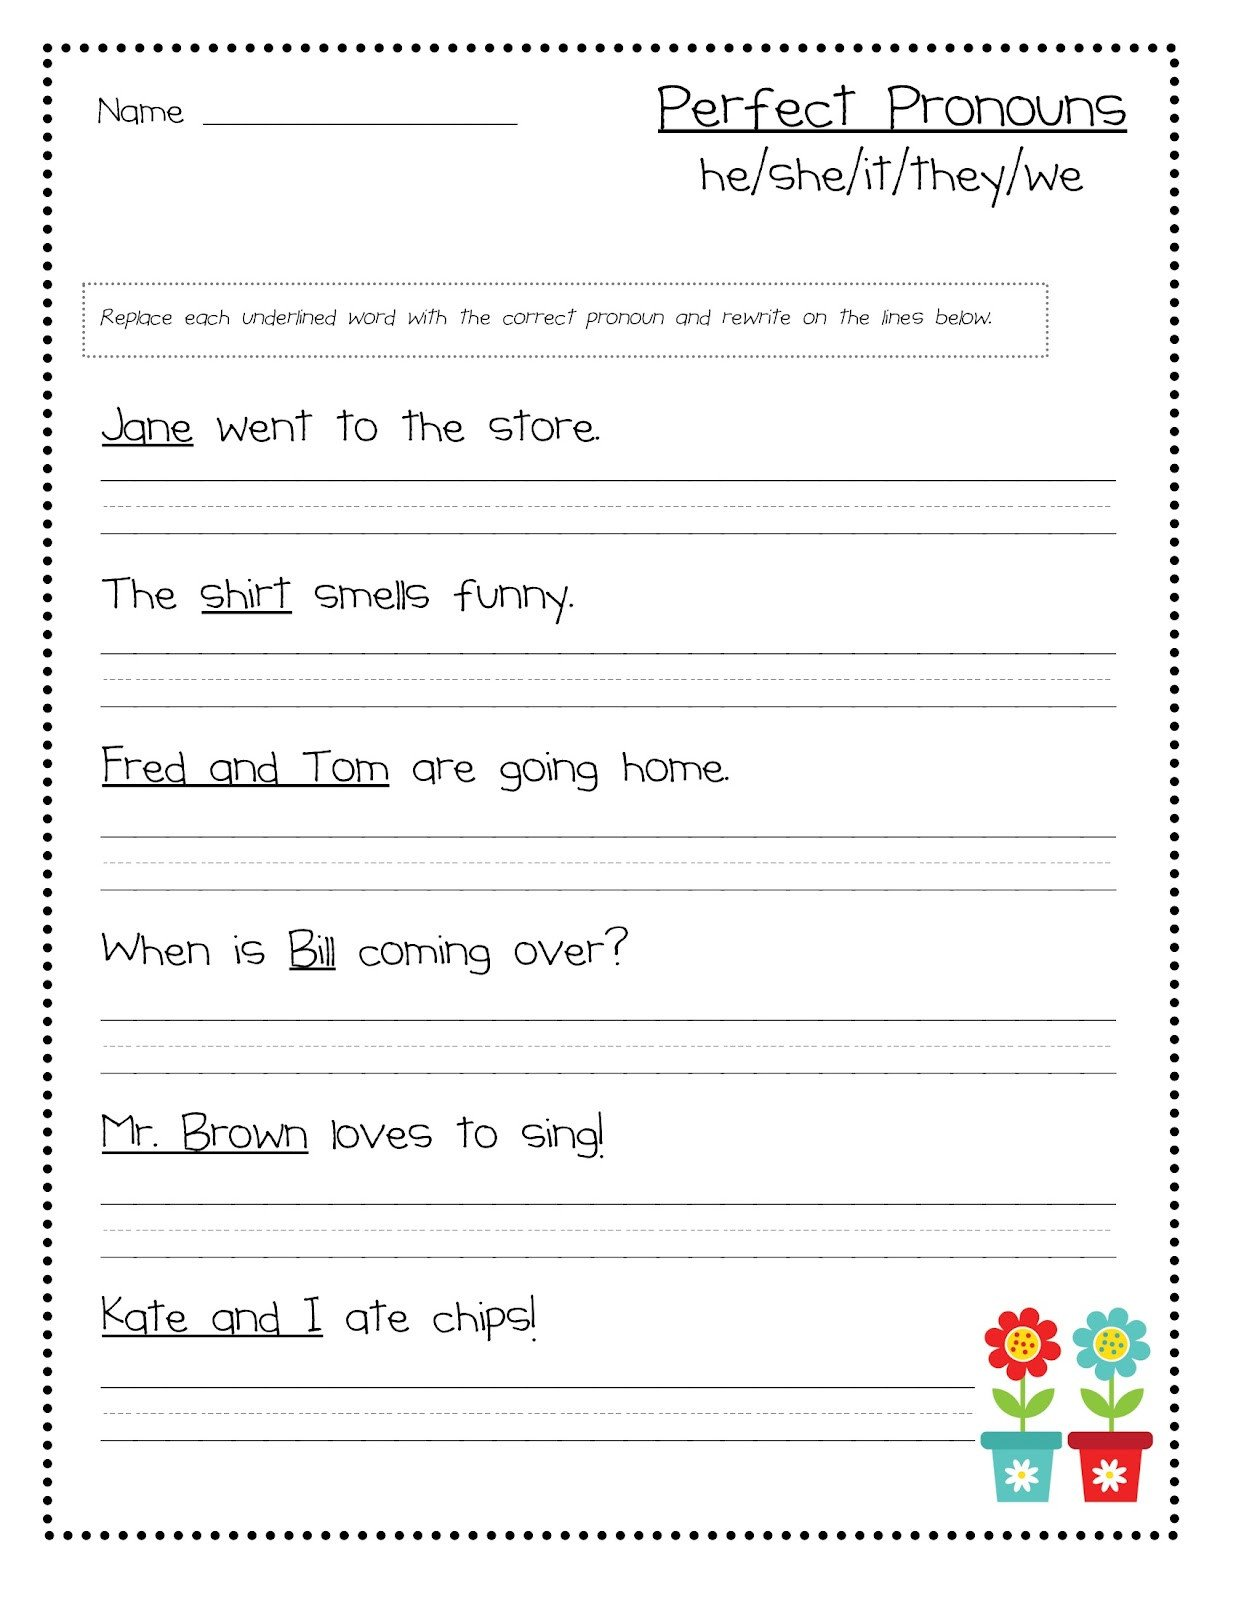 Pronoun Worksheets Second Grade Fun Pronoun Worksheets